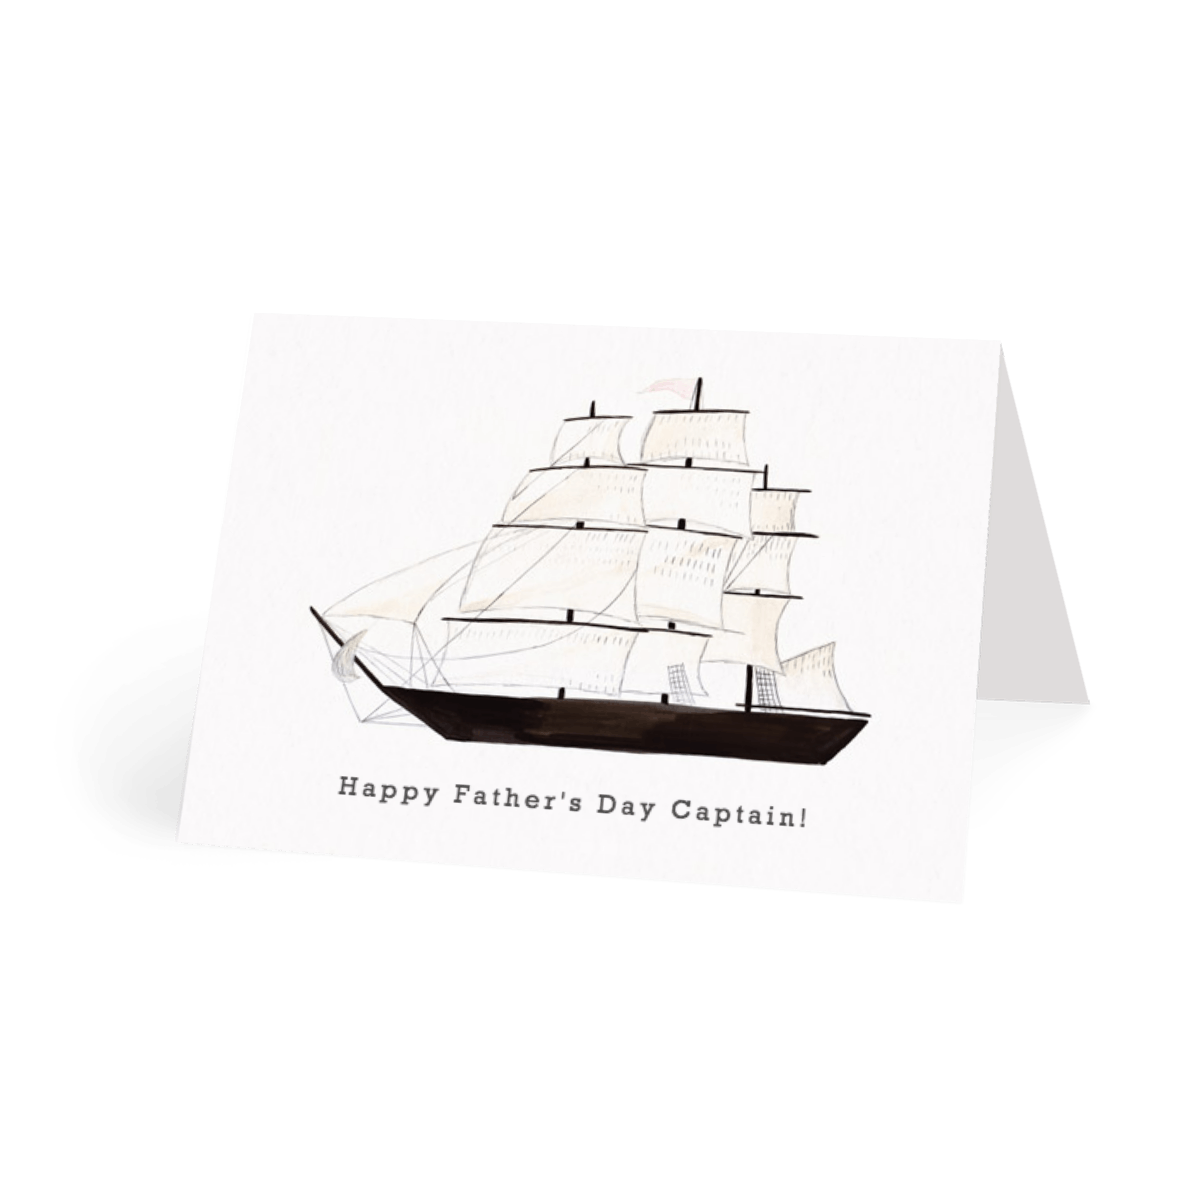 Https%3a%2f%2fwww.papier.com%2fproduct image%2f7551%2f14%2fclipper ship 1862 front 1581452068.png?ixlib=rb 1.1